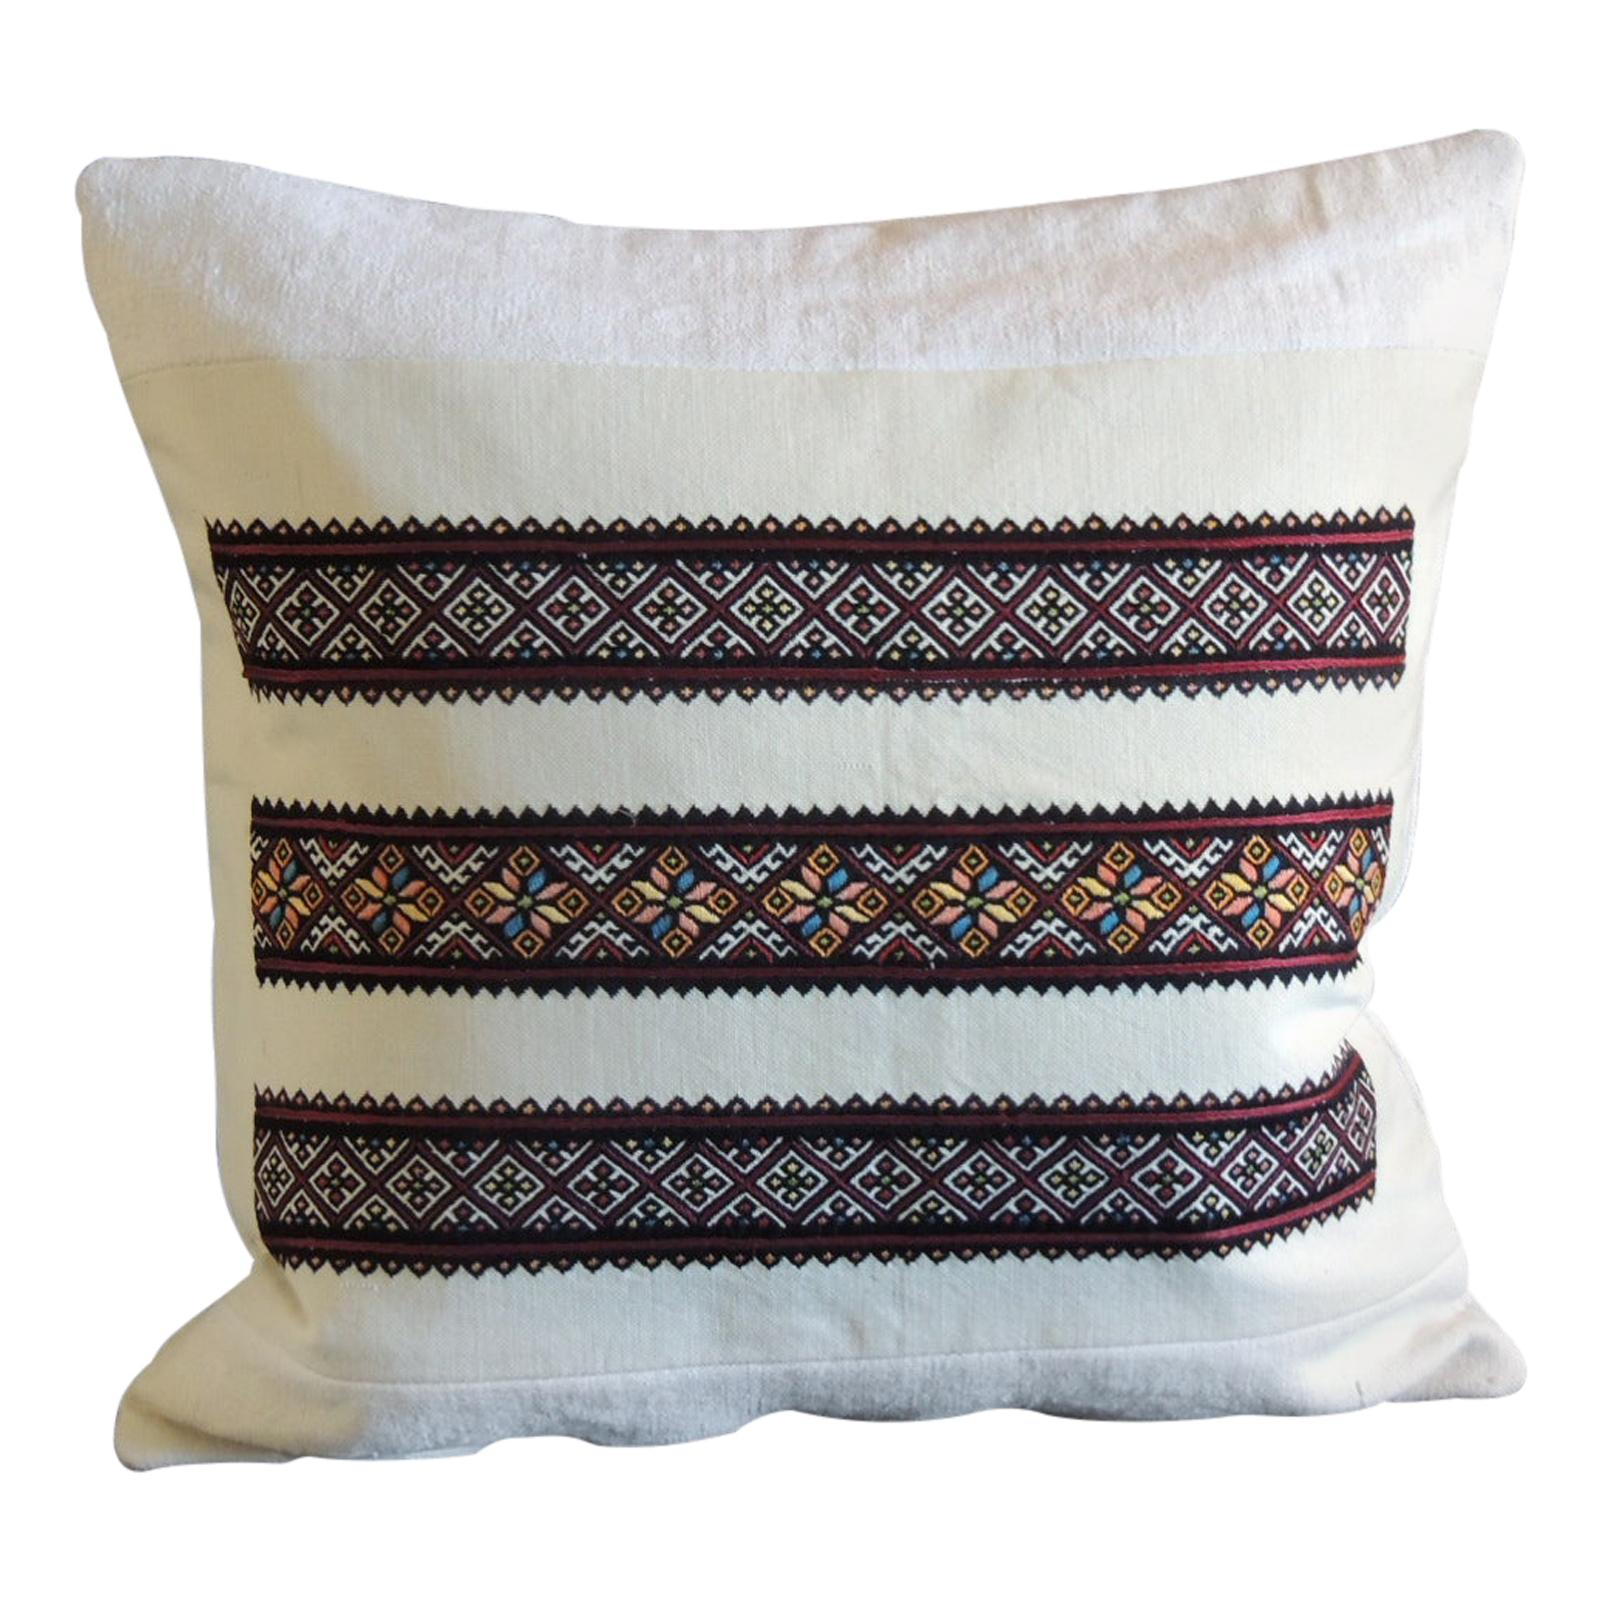 Vintage Anatolian Embroidery Square Red and Orange Square Decorative Pillow